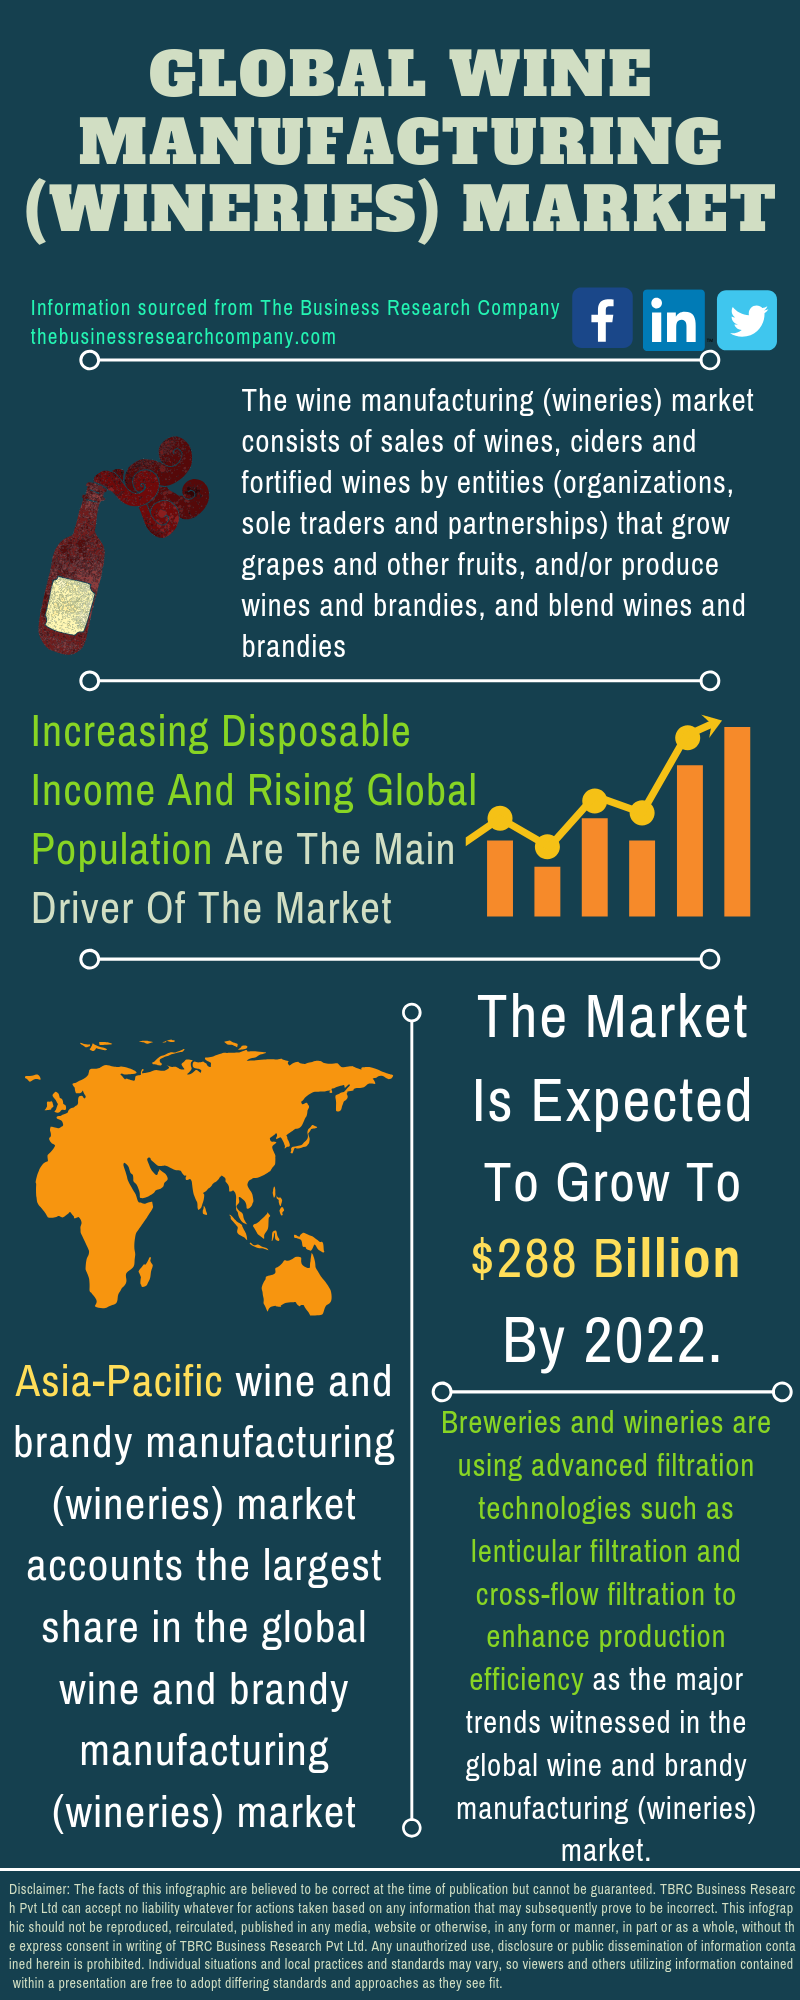 Wine And Brandy (Wineries) Market